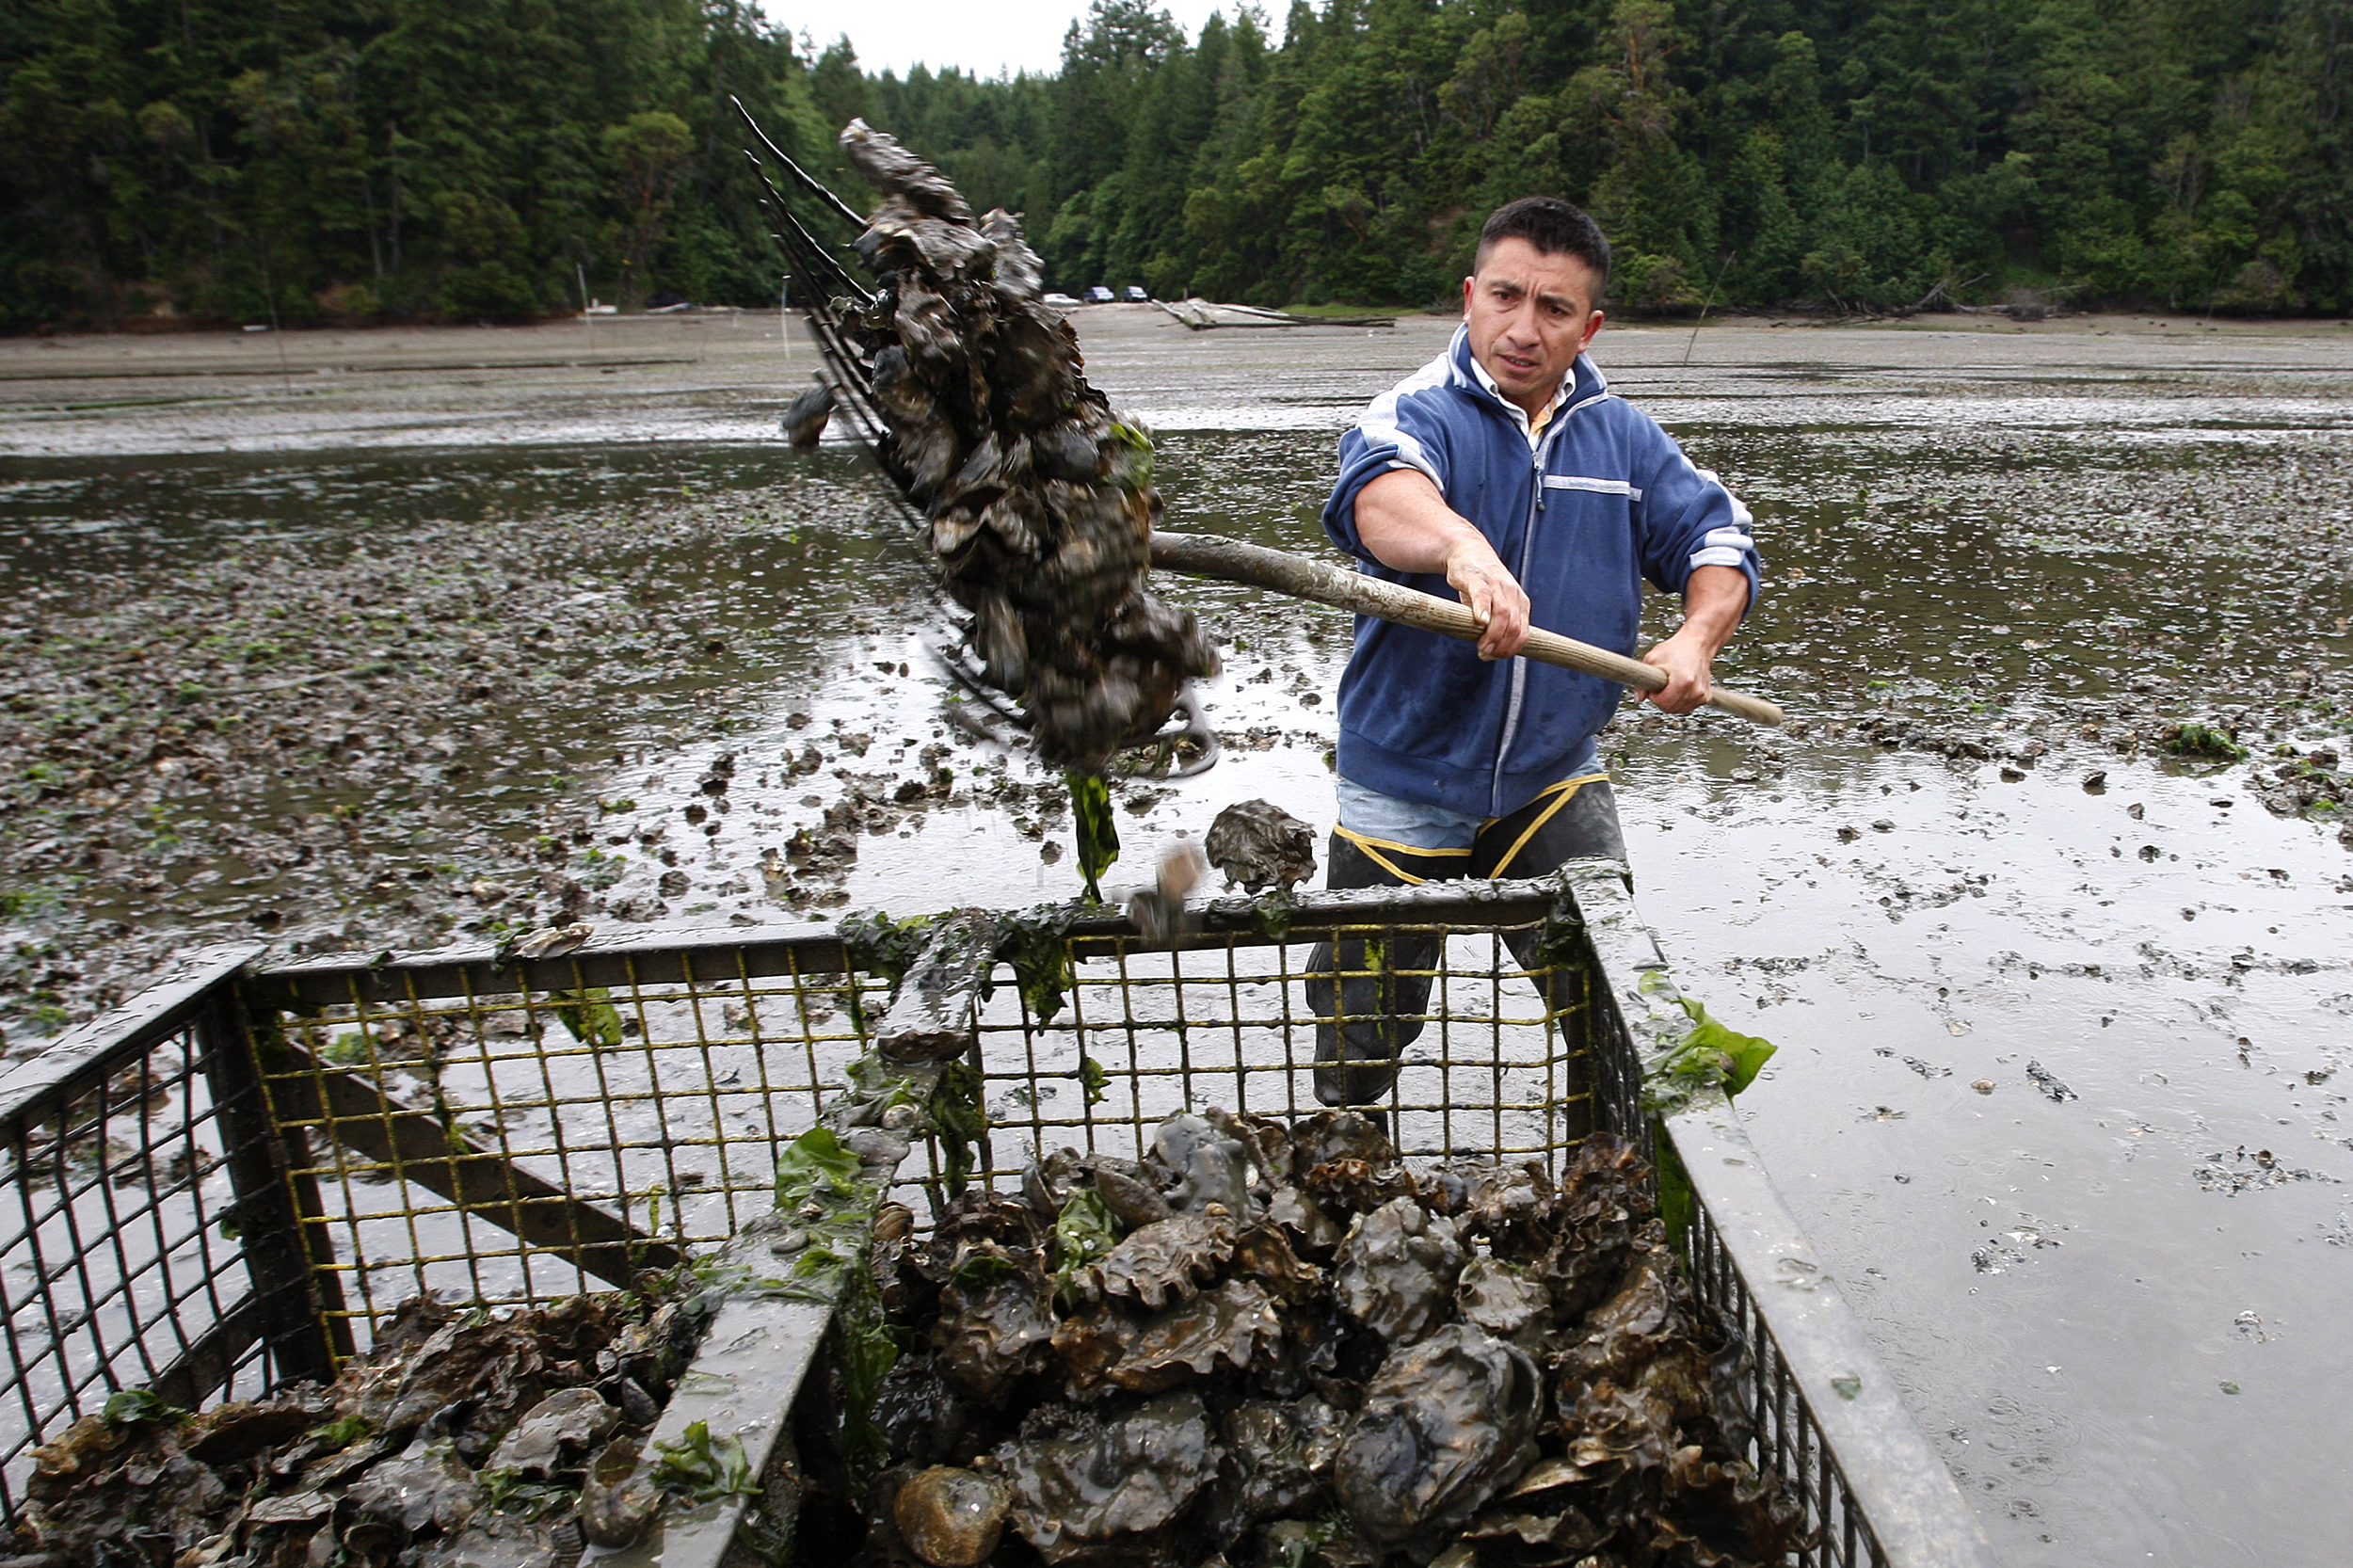 In this June 21, 2010 file photo, Efrain Rivera uses a pitchfork to harvest Pacific oysters at low tide at a Farm owned by Taylor Shellfish Co. in Oyster Bay, near Olympia. (Photo by Ted S. Warren/AP)